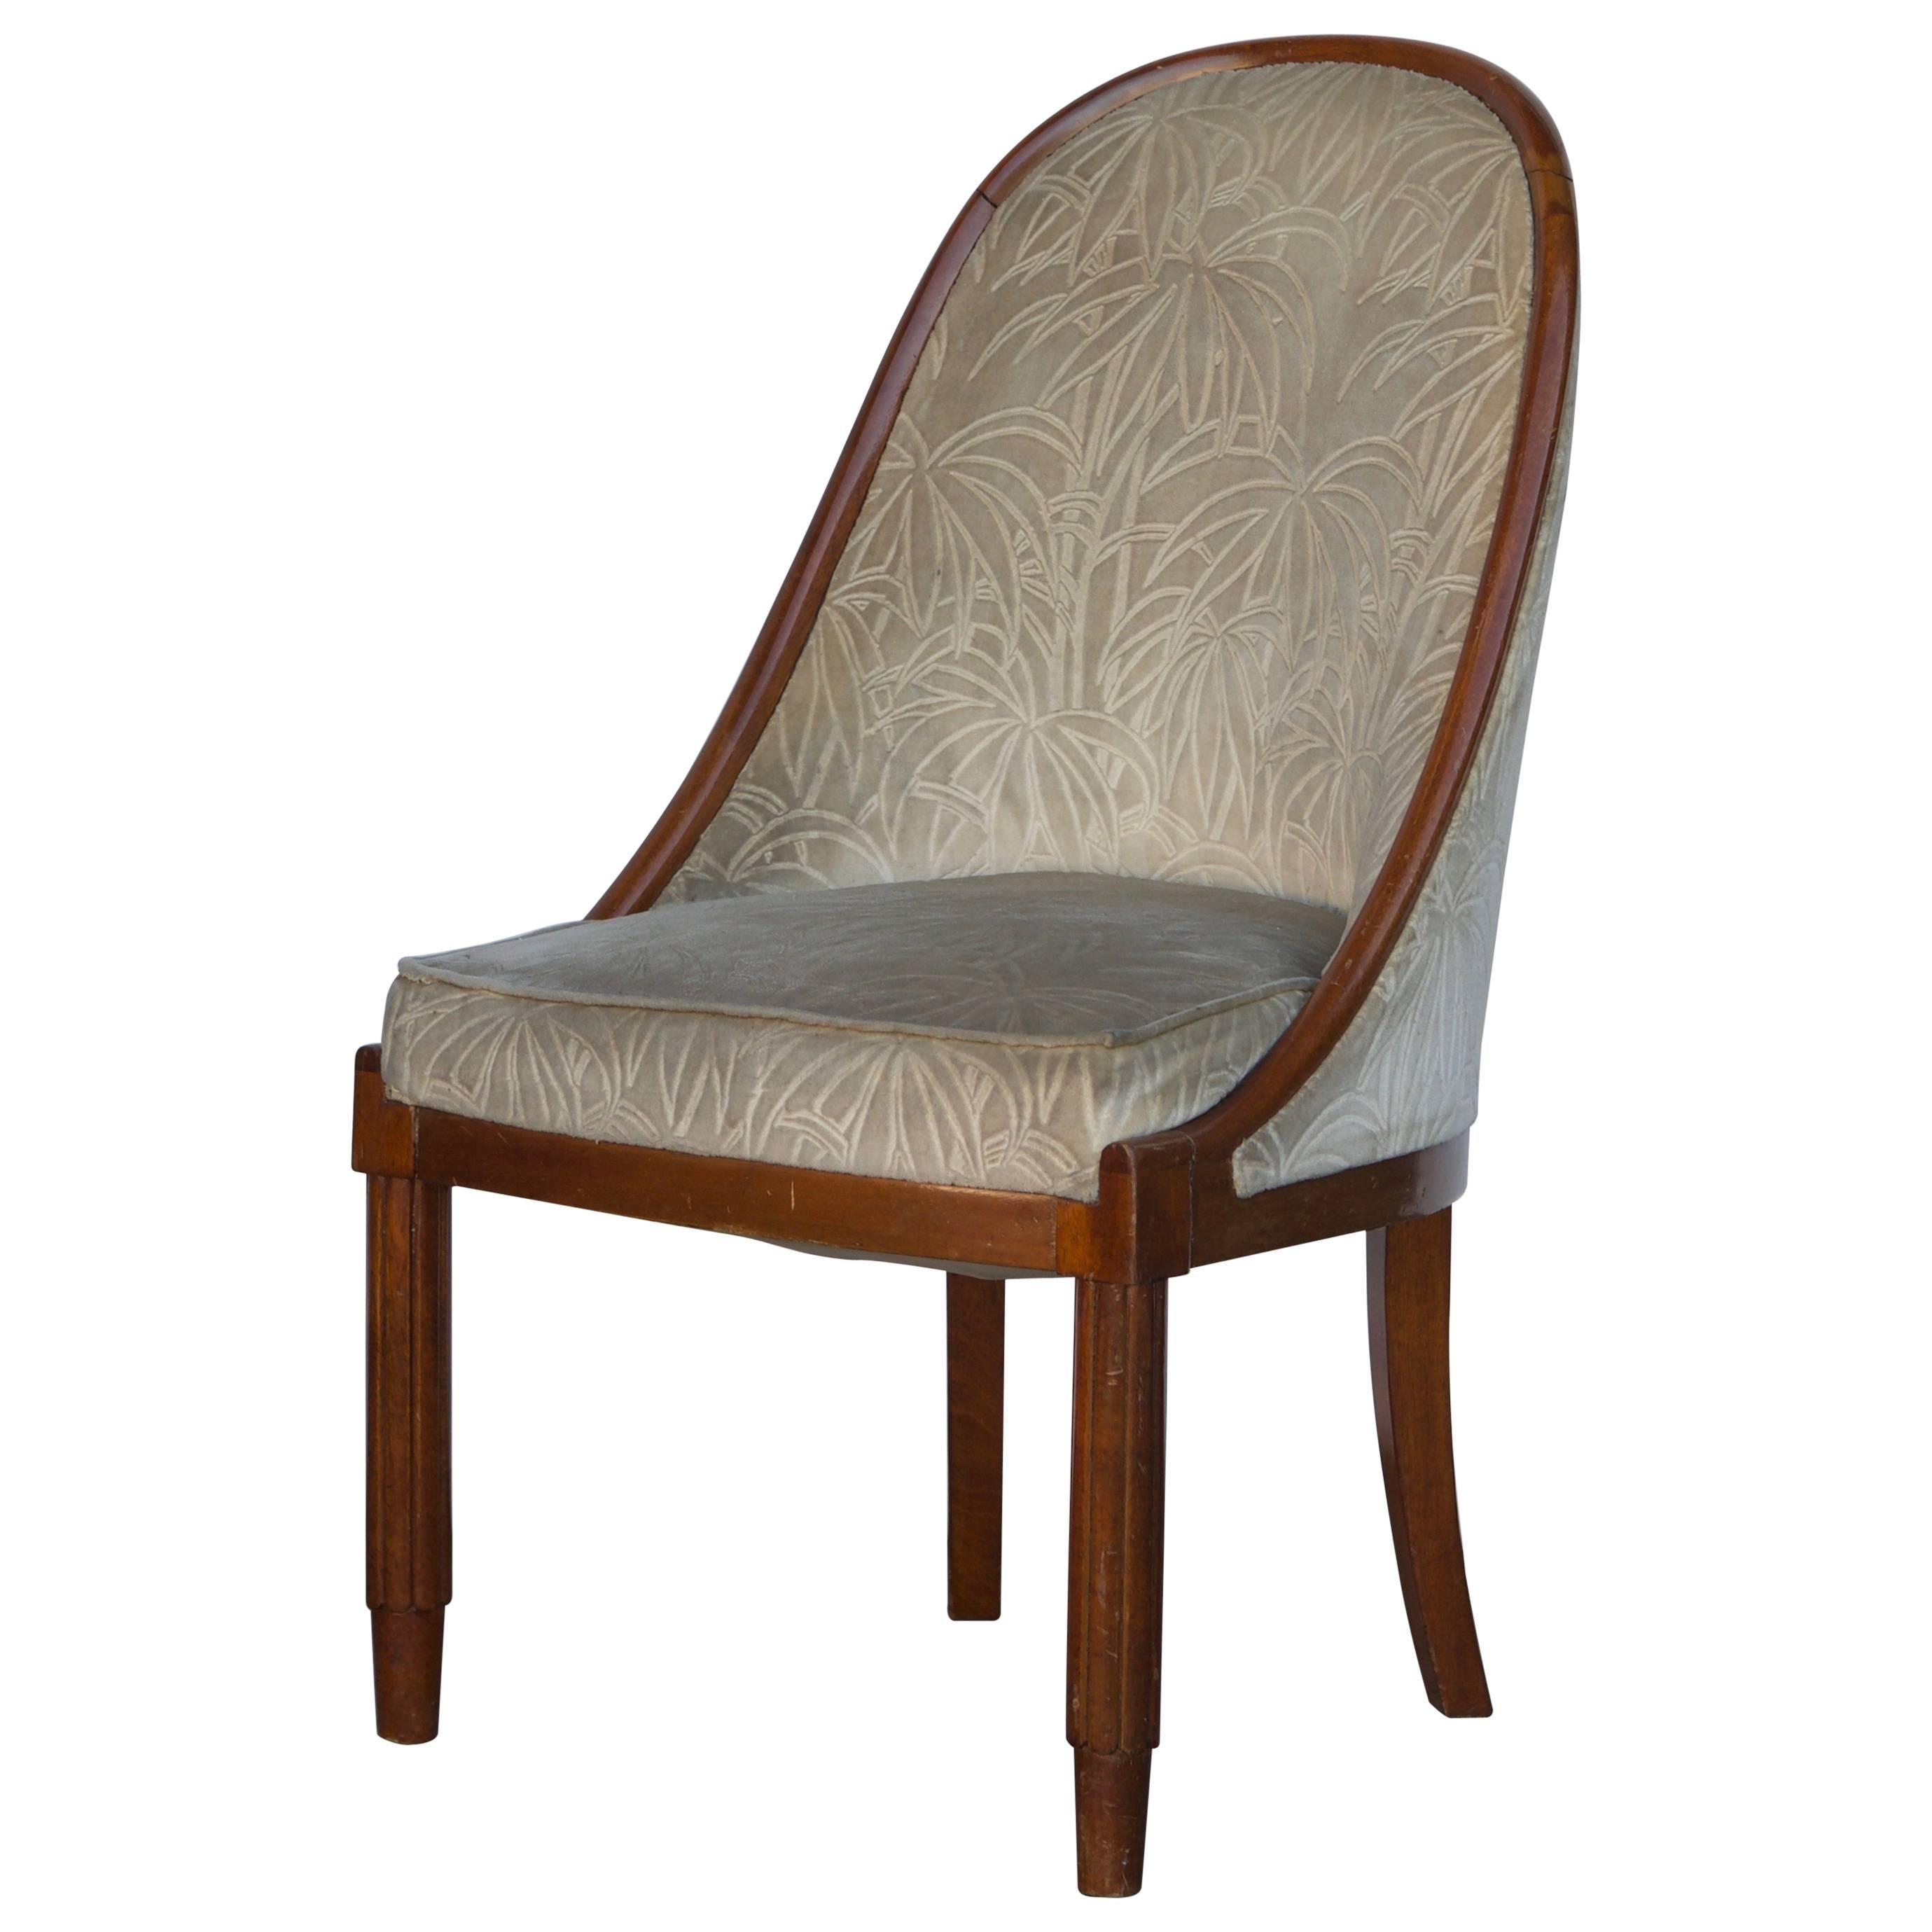 Chic French Art Deco Bergère in the style of Émile-Jacques Ruhlmann